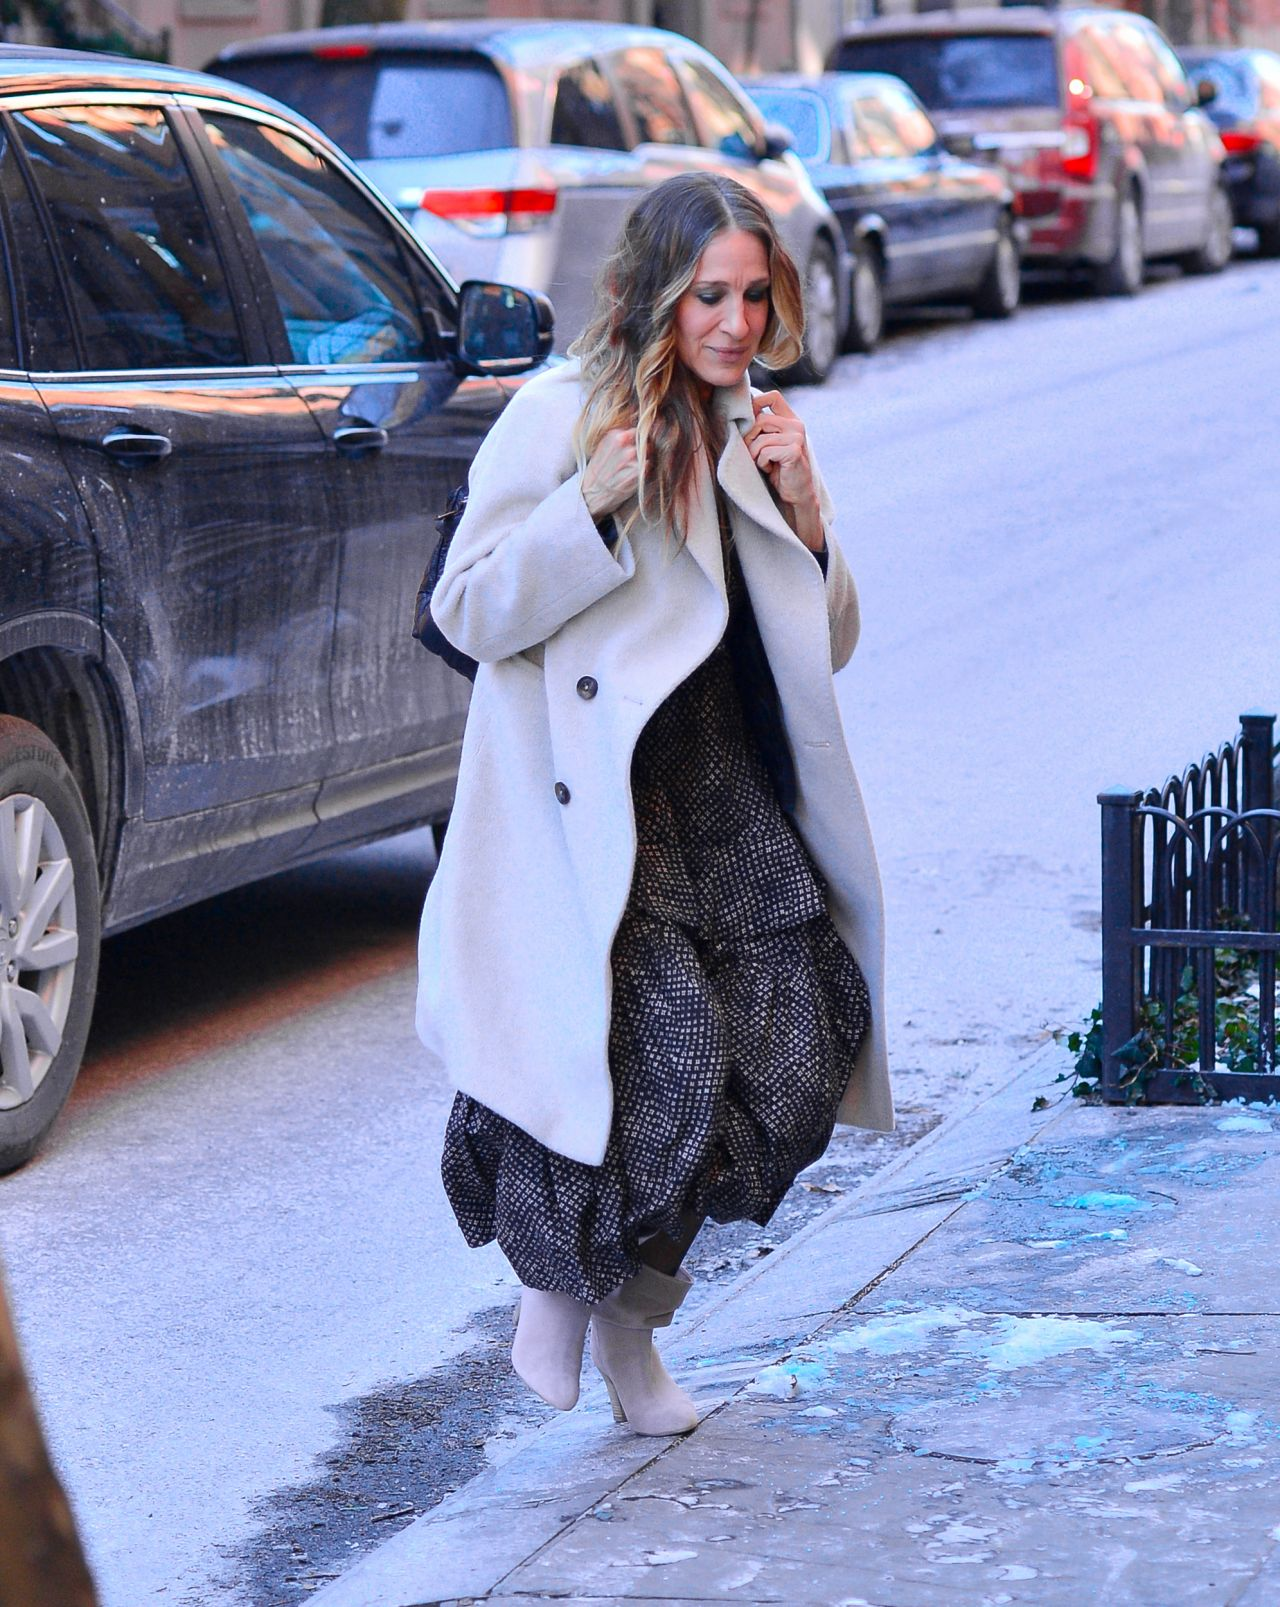 Sarah Jessica Parker? Love the look, Girl. Except | Tom